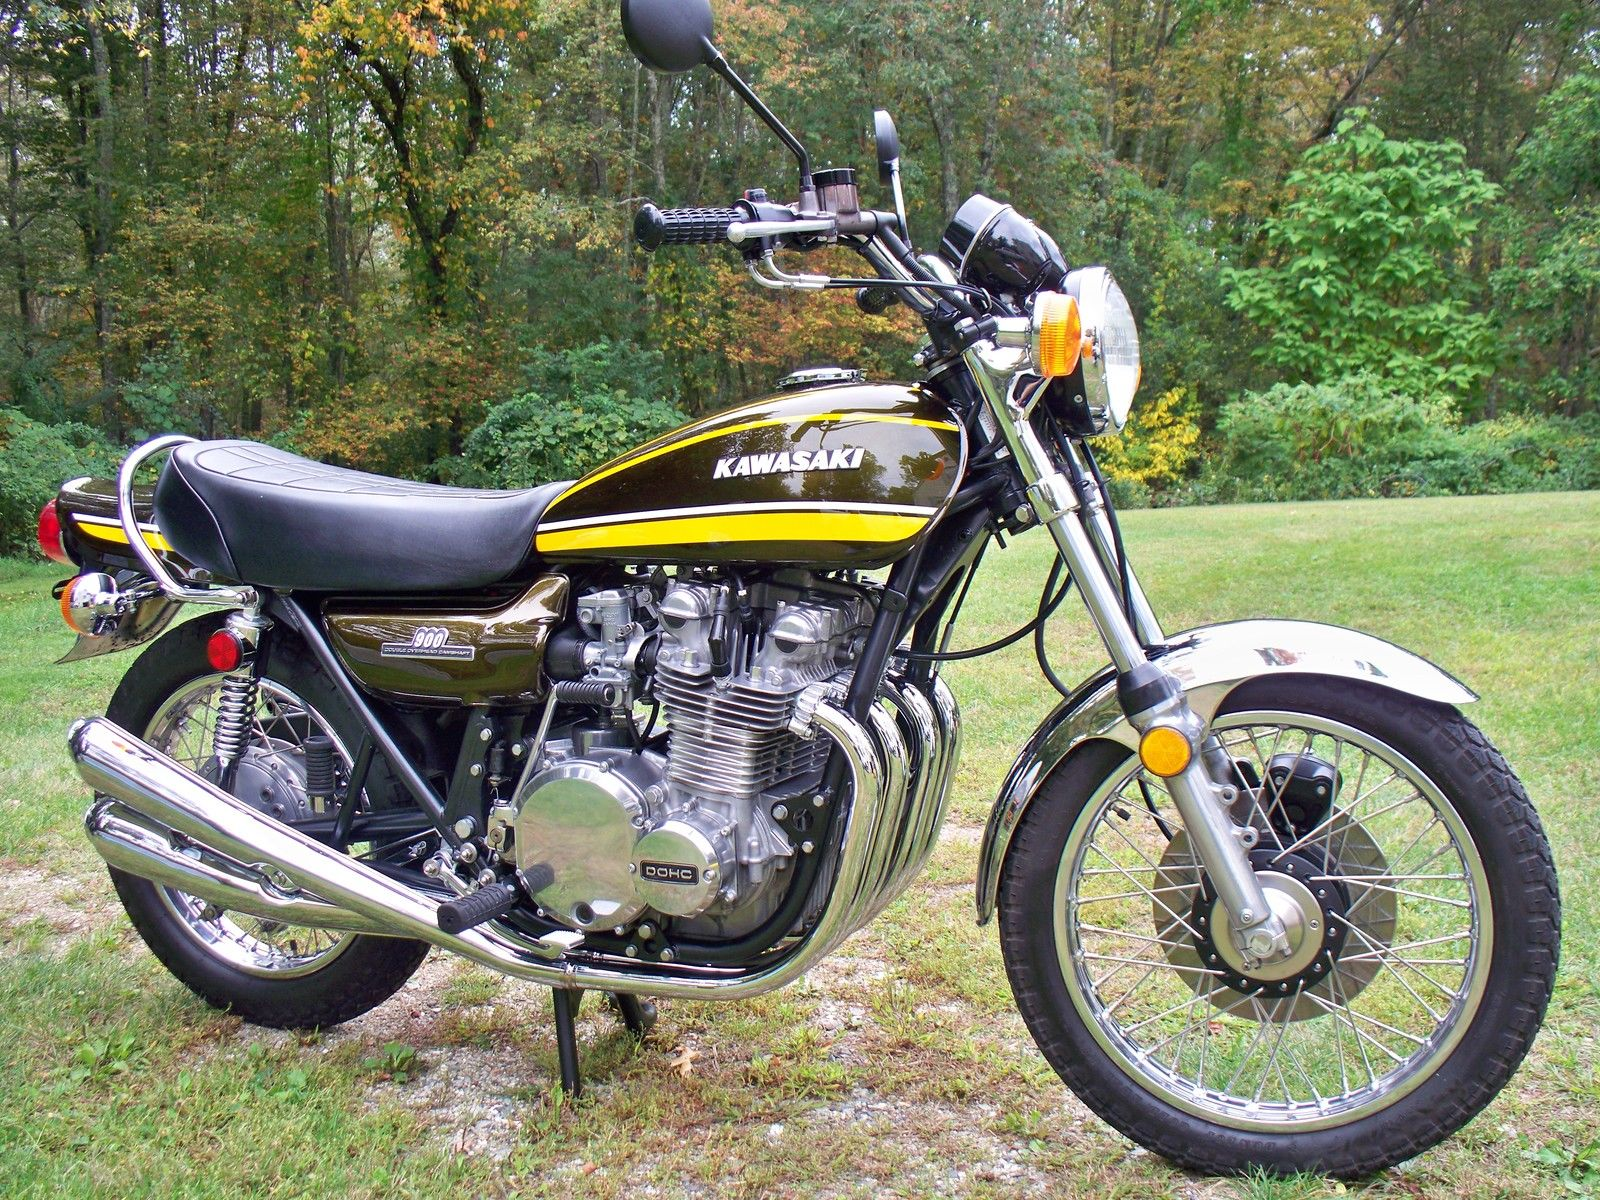 Early 1974 Kawasaki Z1 900